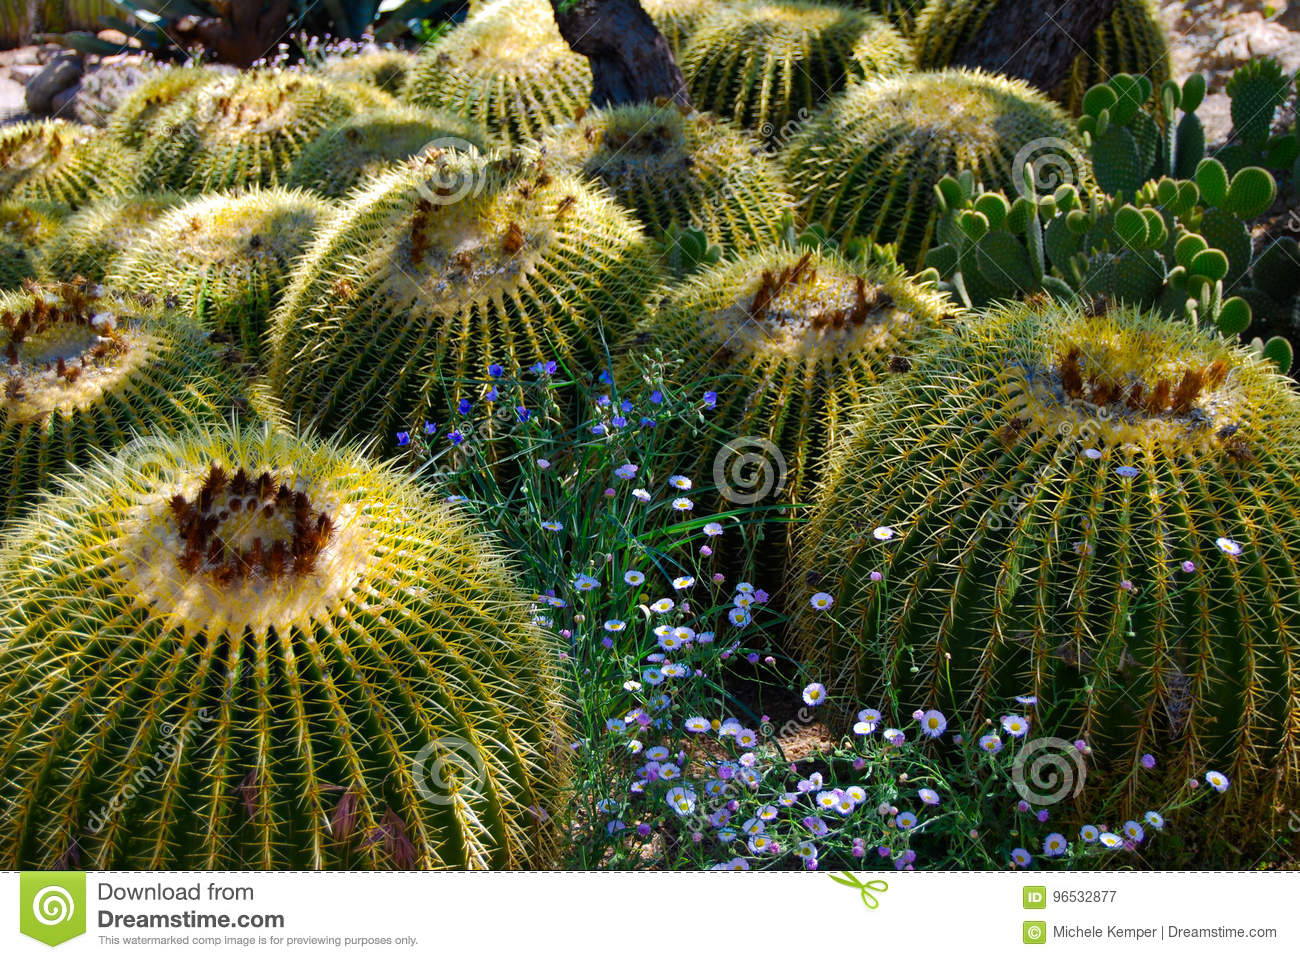 Barrel Cactus with Blue Flowers